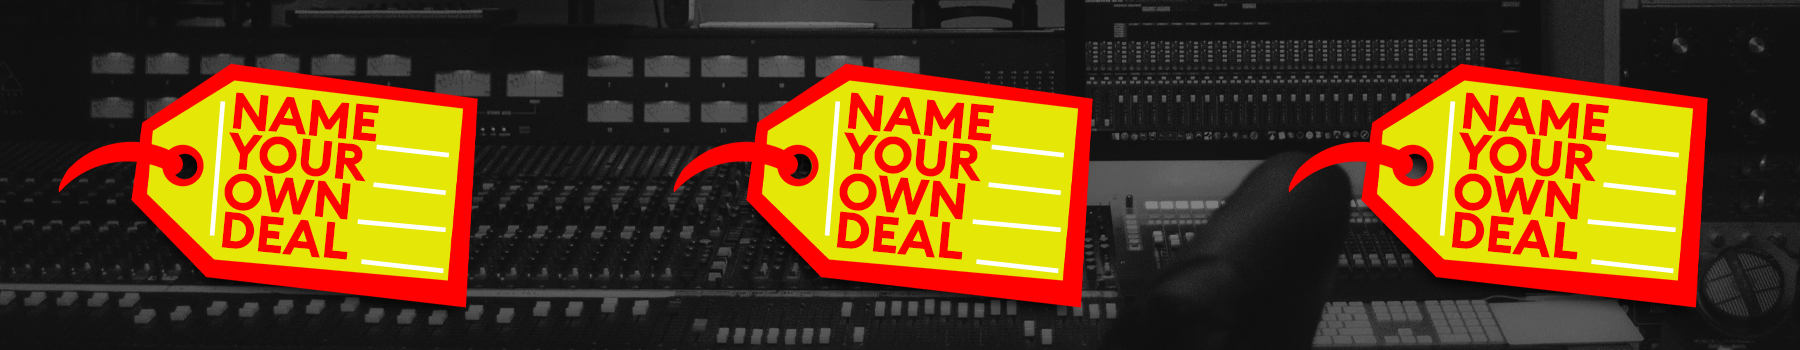 Name Your Own Deal